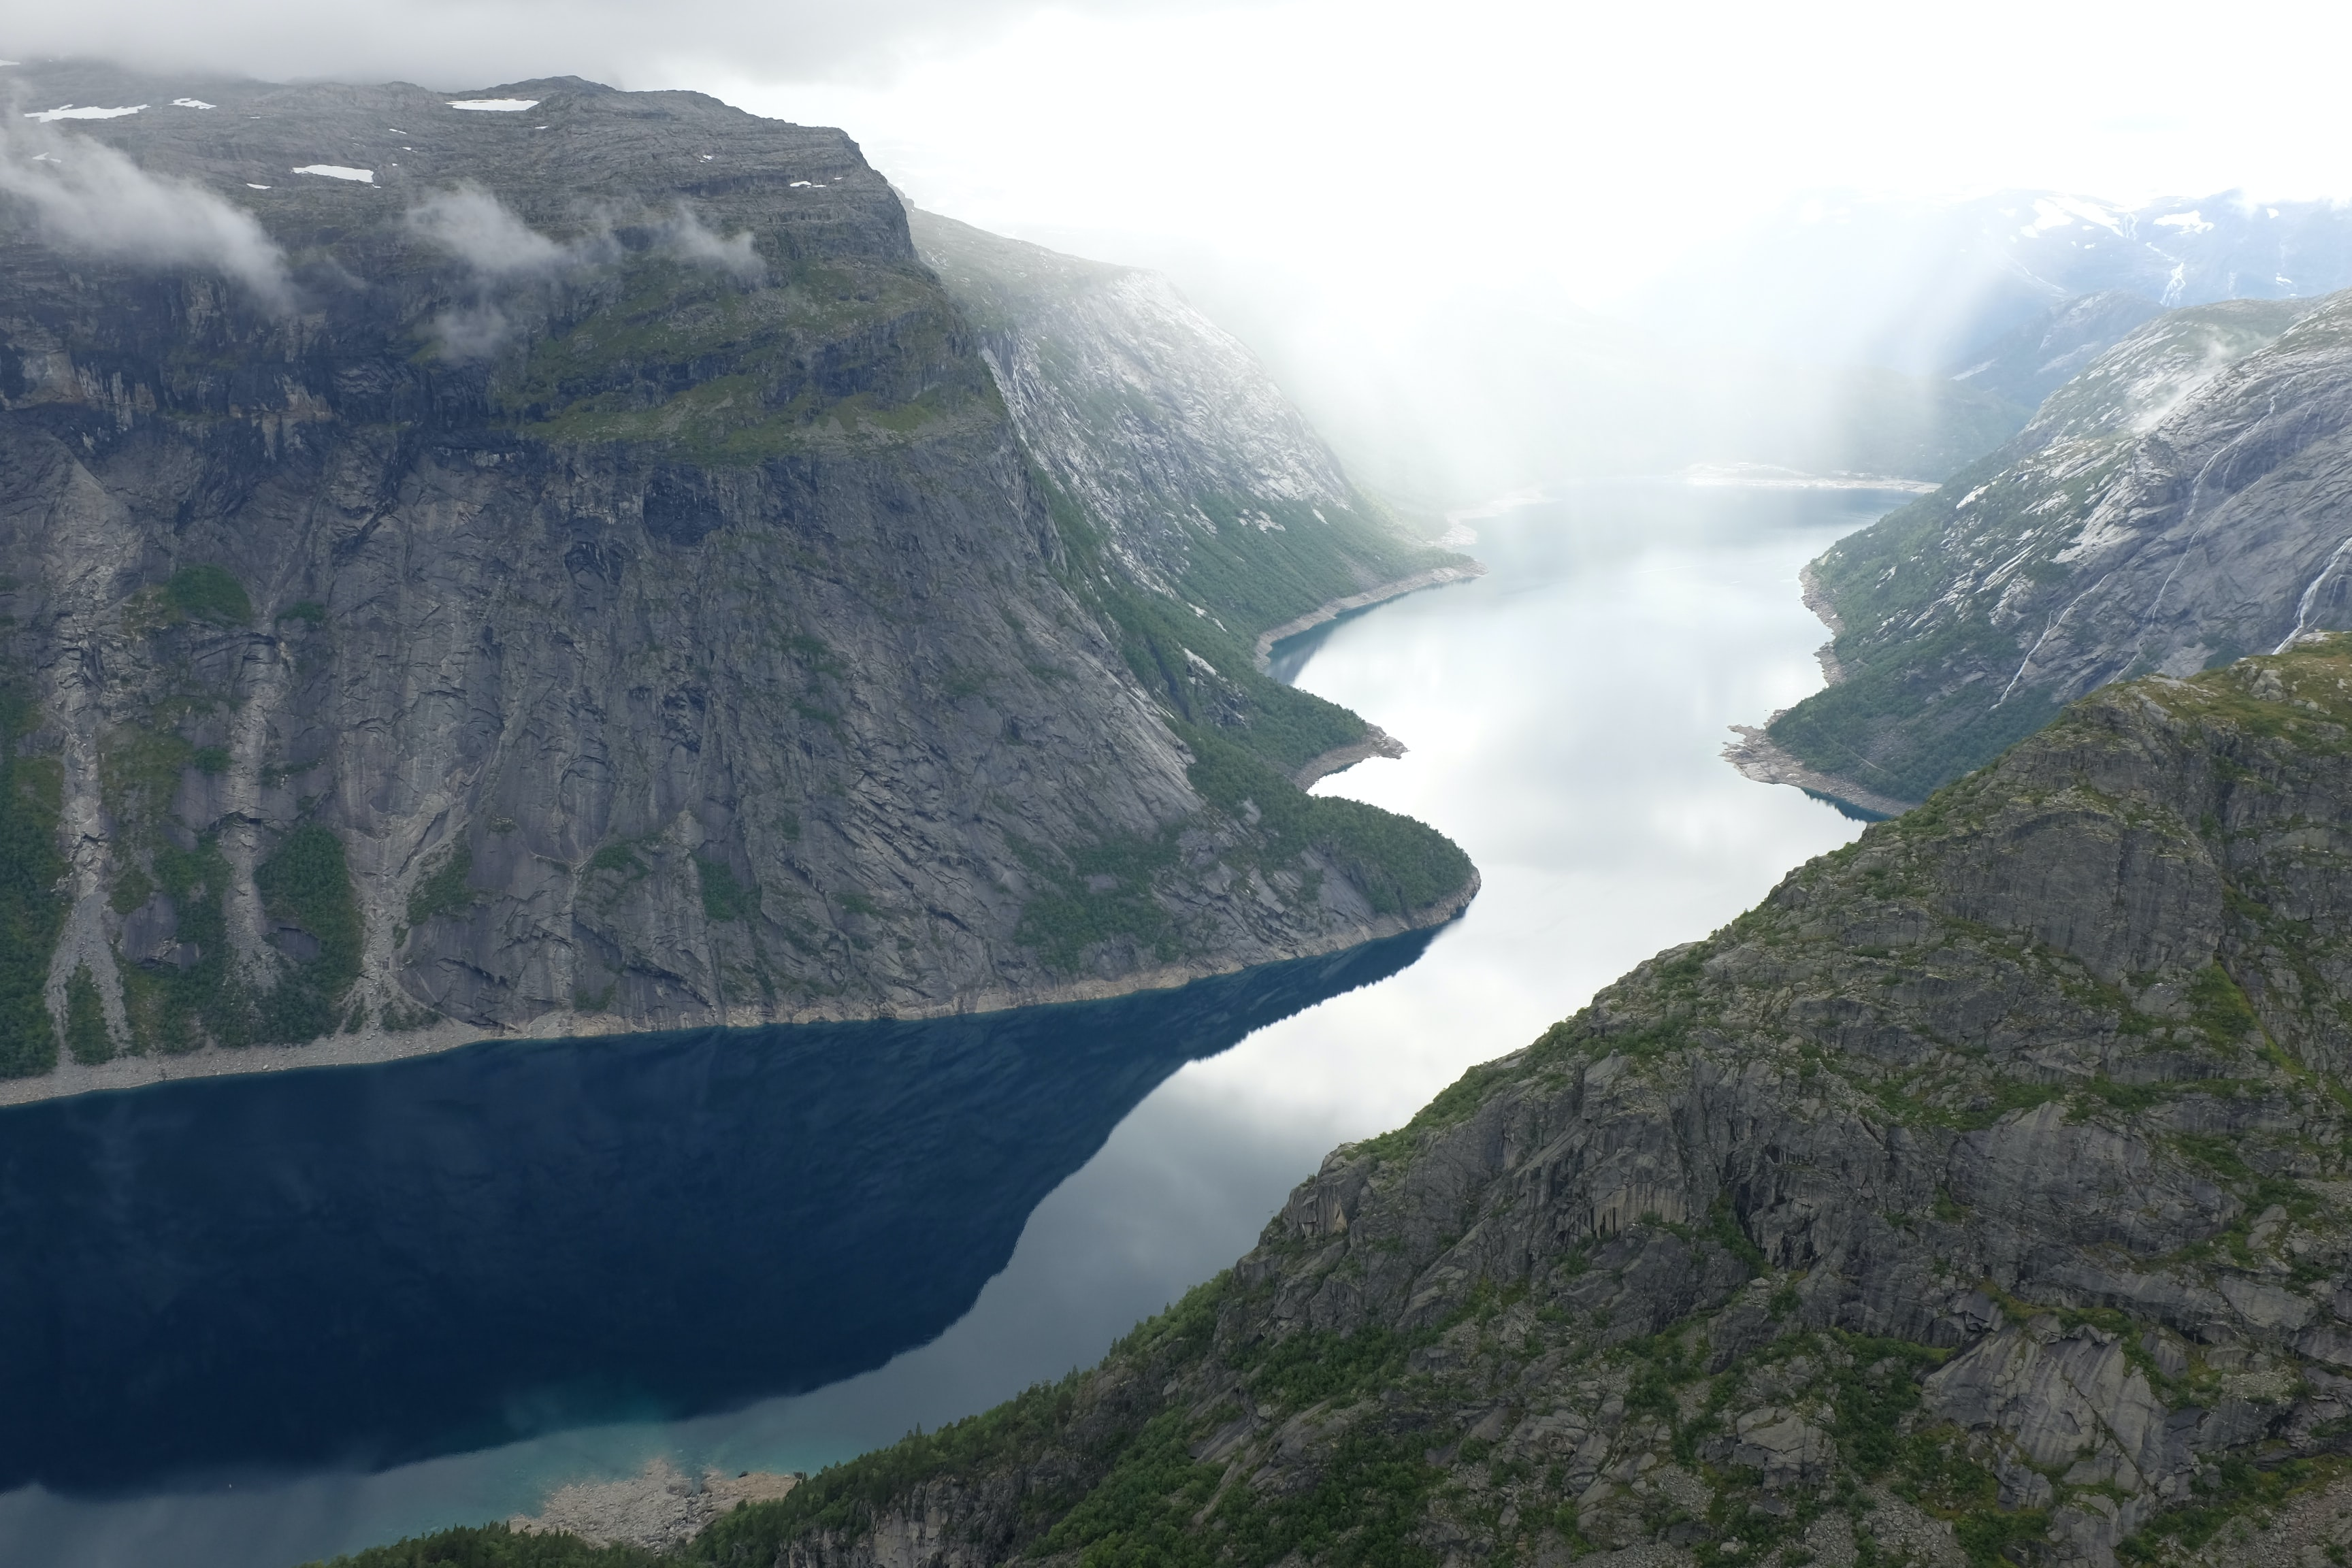 Calm valley river sits between lush mountains in Trolltunga